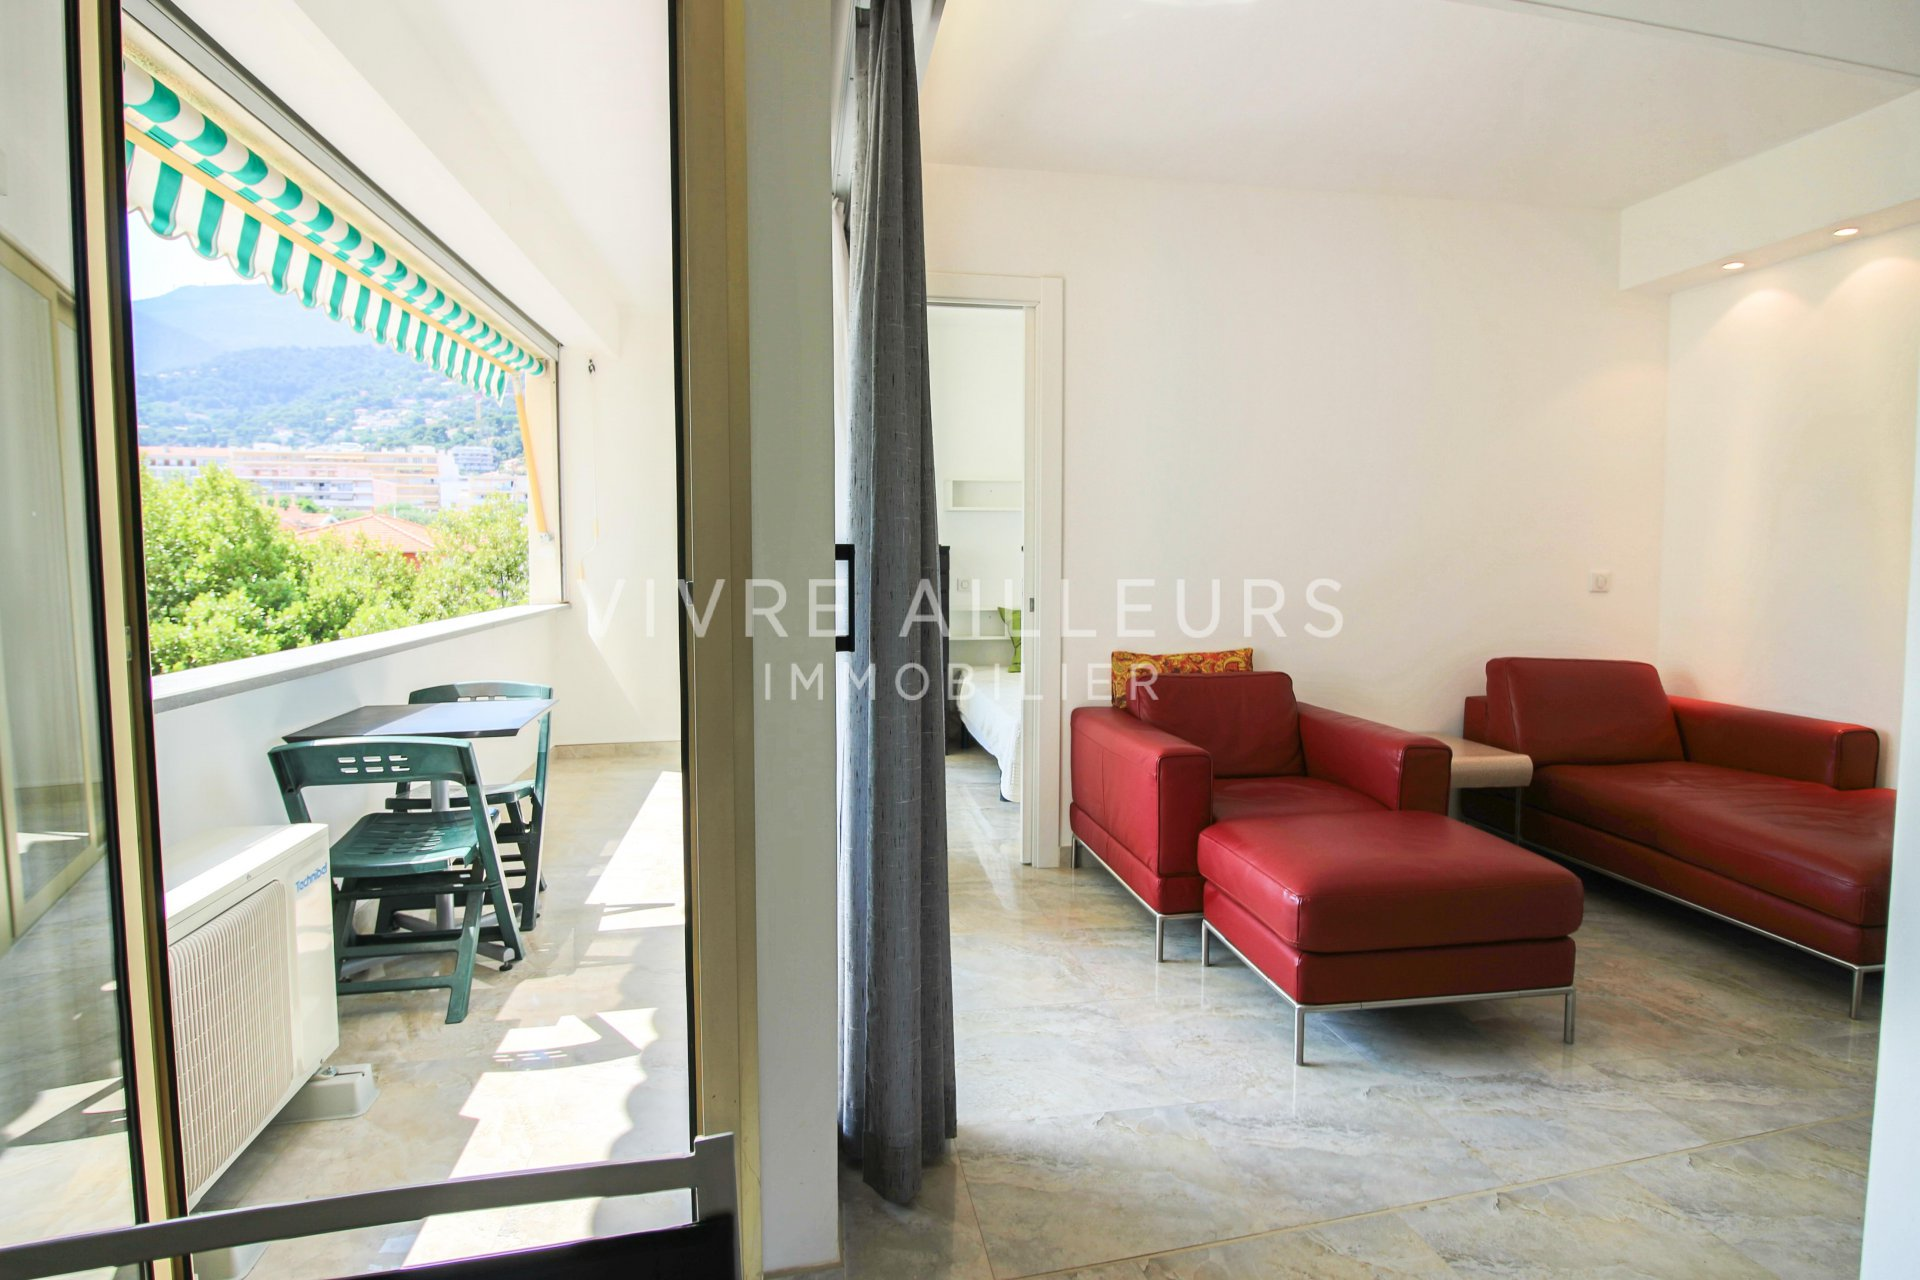 Sale Apartment - Roquebrune-Cap-Martin